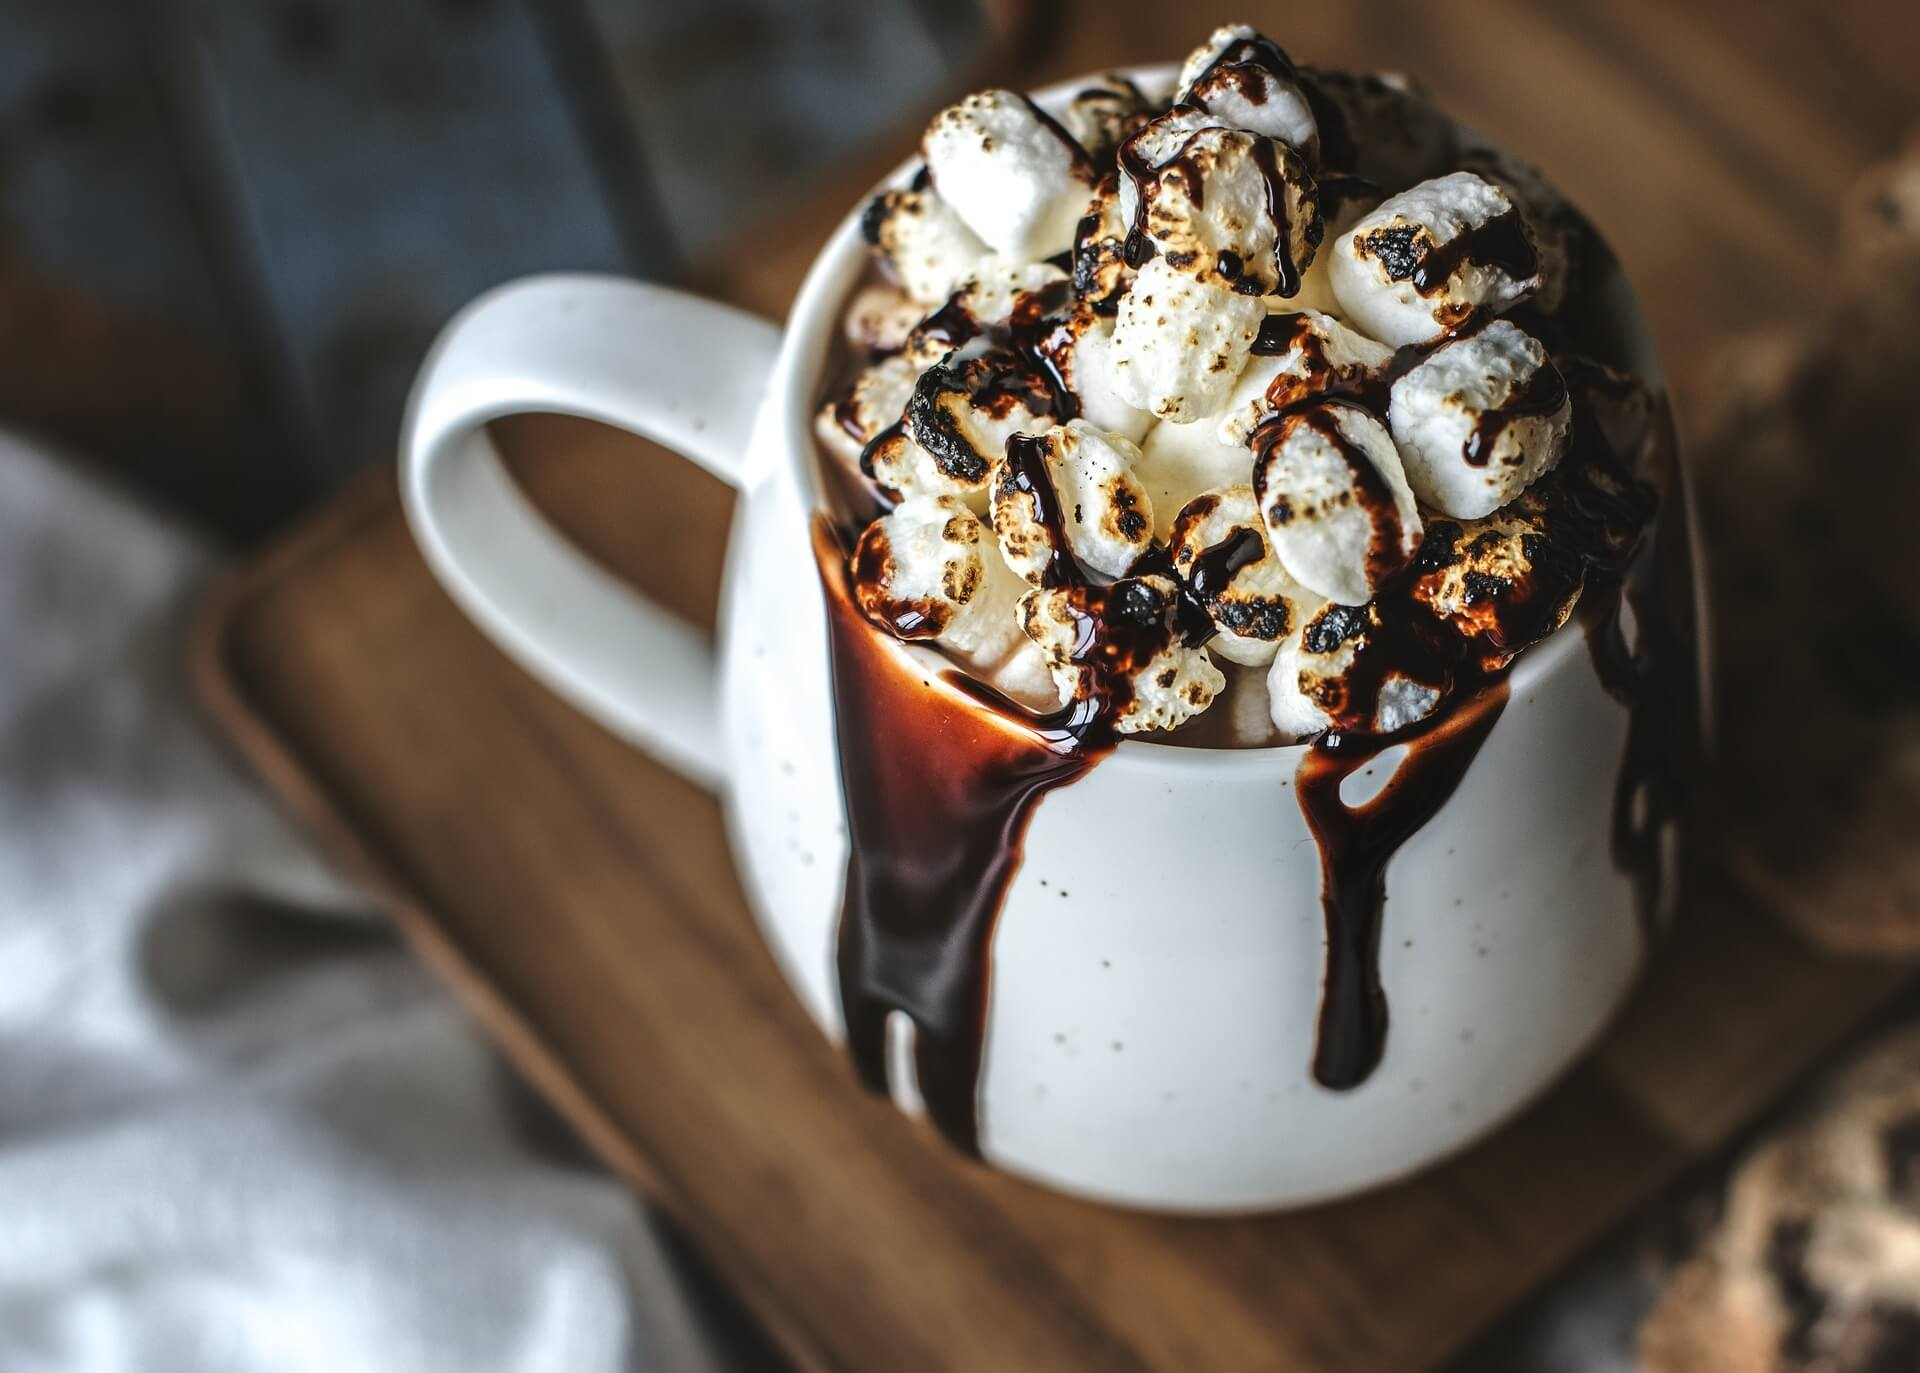 A JPG of chocolate with marshmellows.